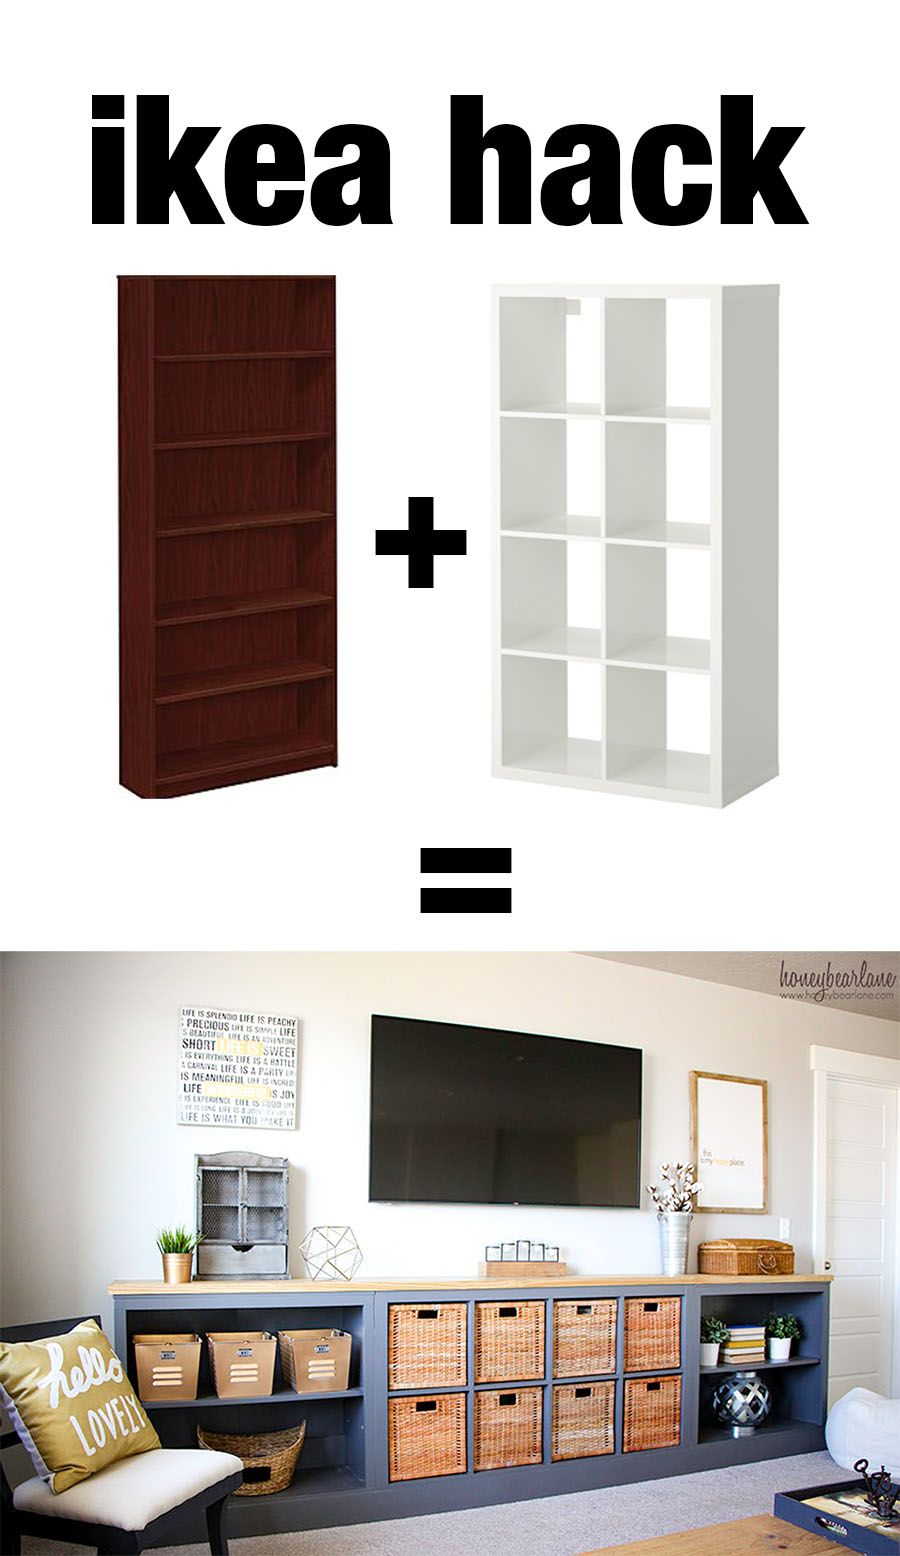 ikea hack expedit into long storage unit gerste pinterest m bel wohnzimmer und haus. Black Bedroom Furniture Sets. Home Design Ideas